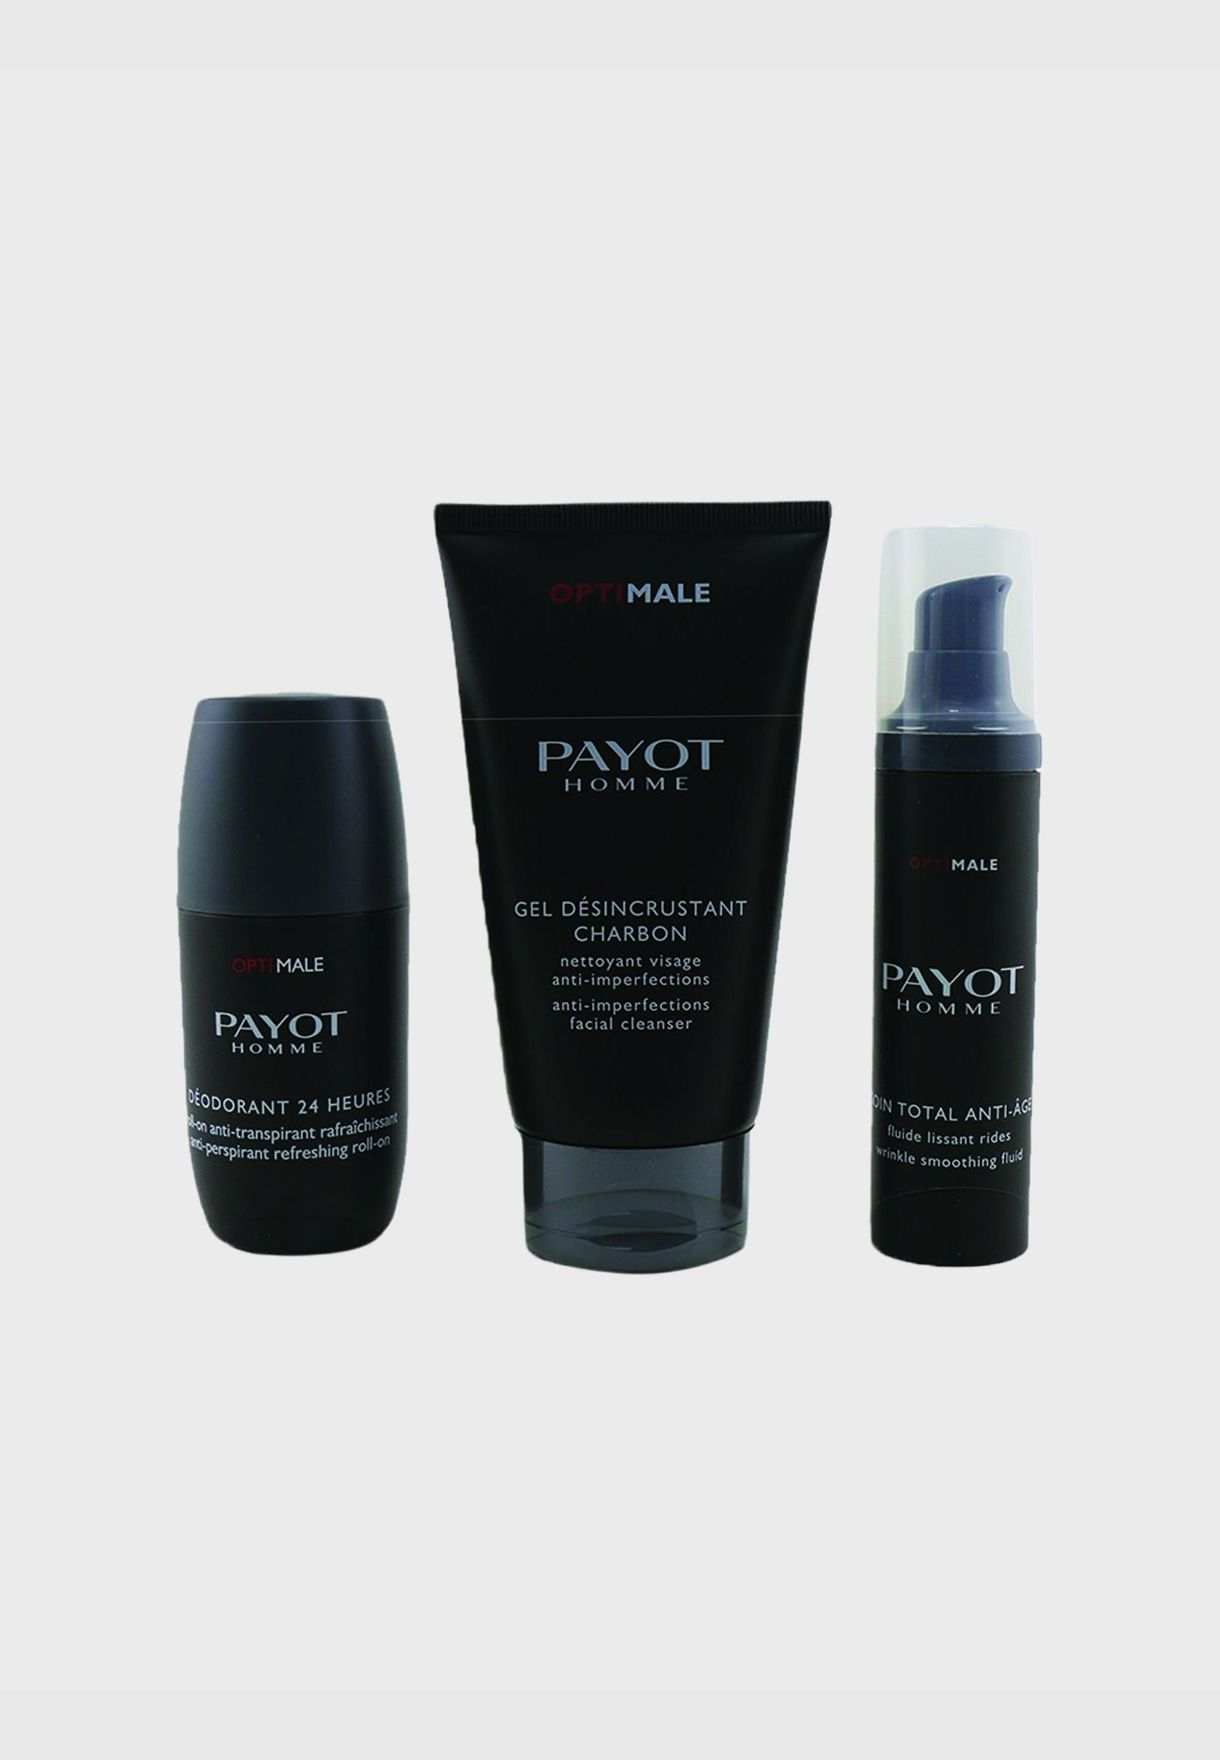 Optimale Energising Ritual For Men Set : 1x Facial Cleanser 150ml + 1x Wrinkle Smoothing Fluid 50ml + 1x 24 Hrs Roll-On 75ml